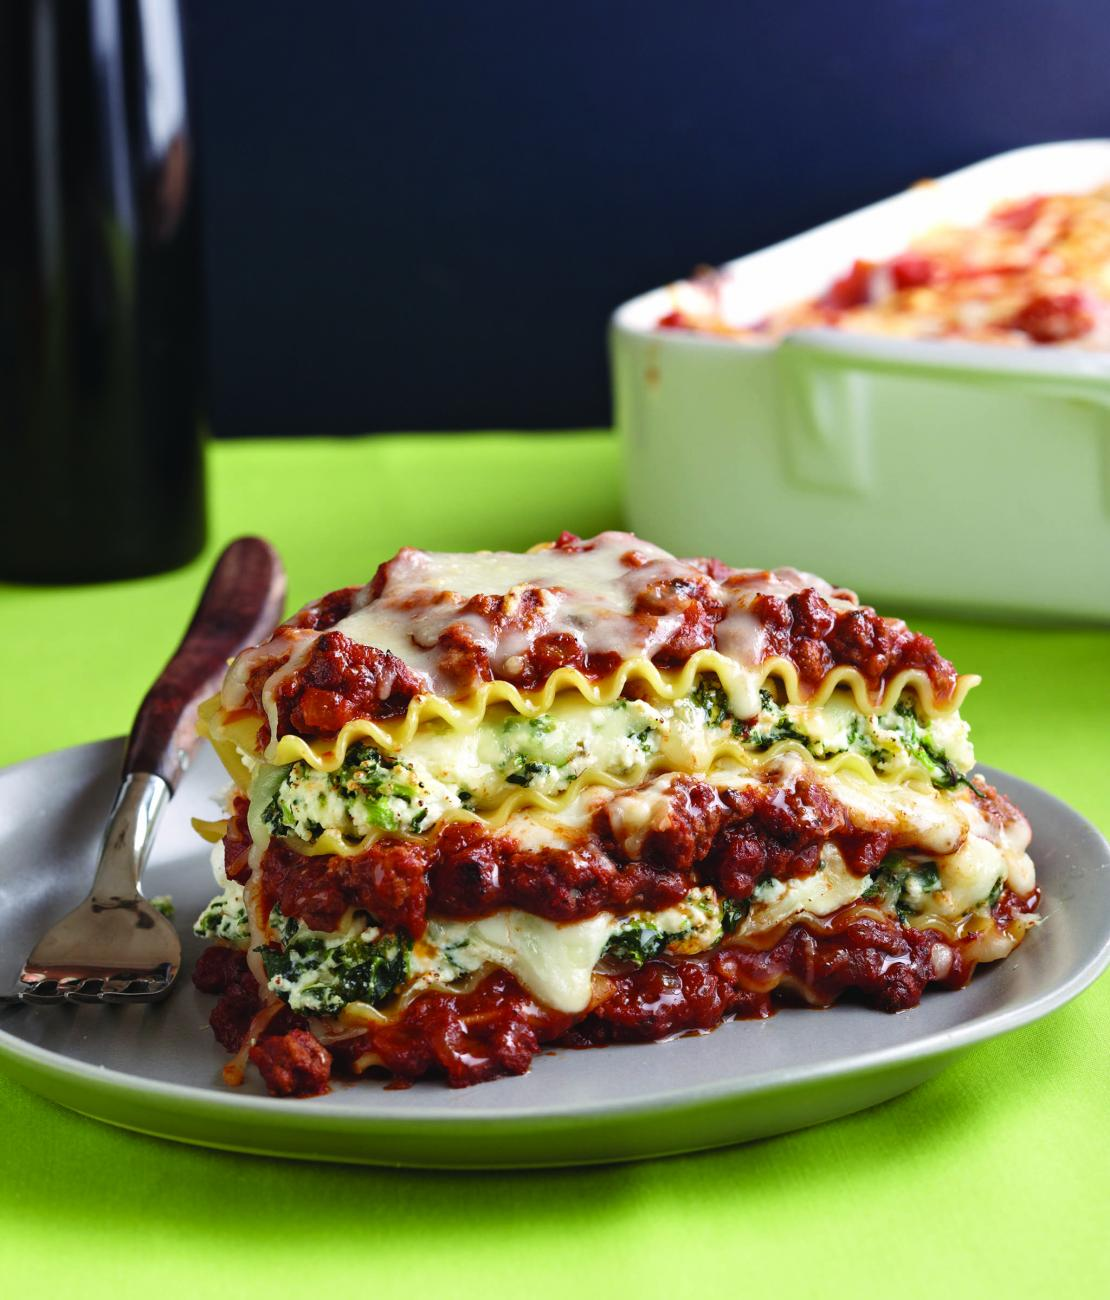 Recipe for Lasagna With Two Sauces